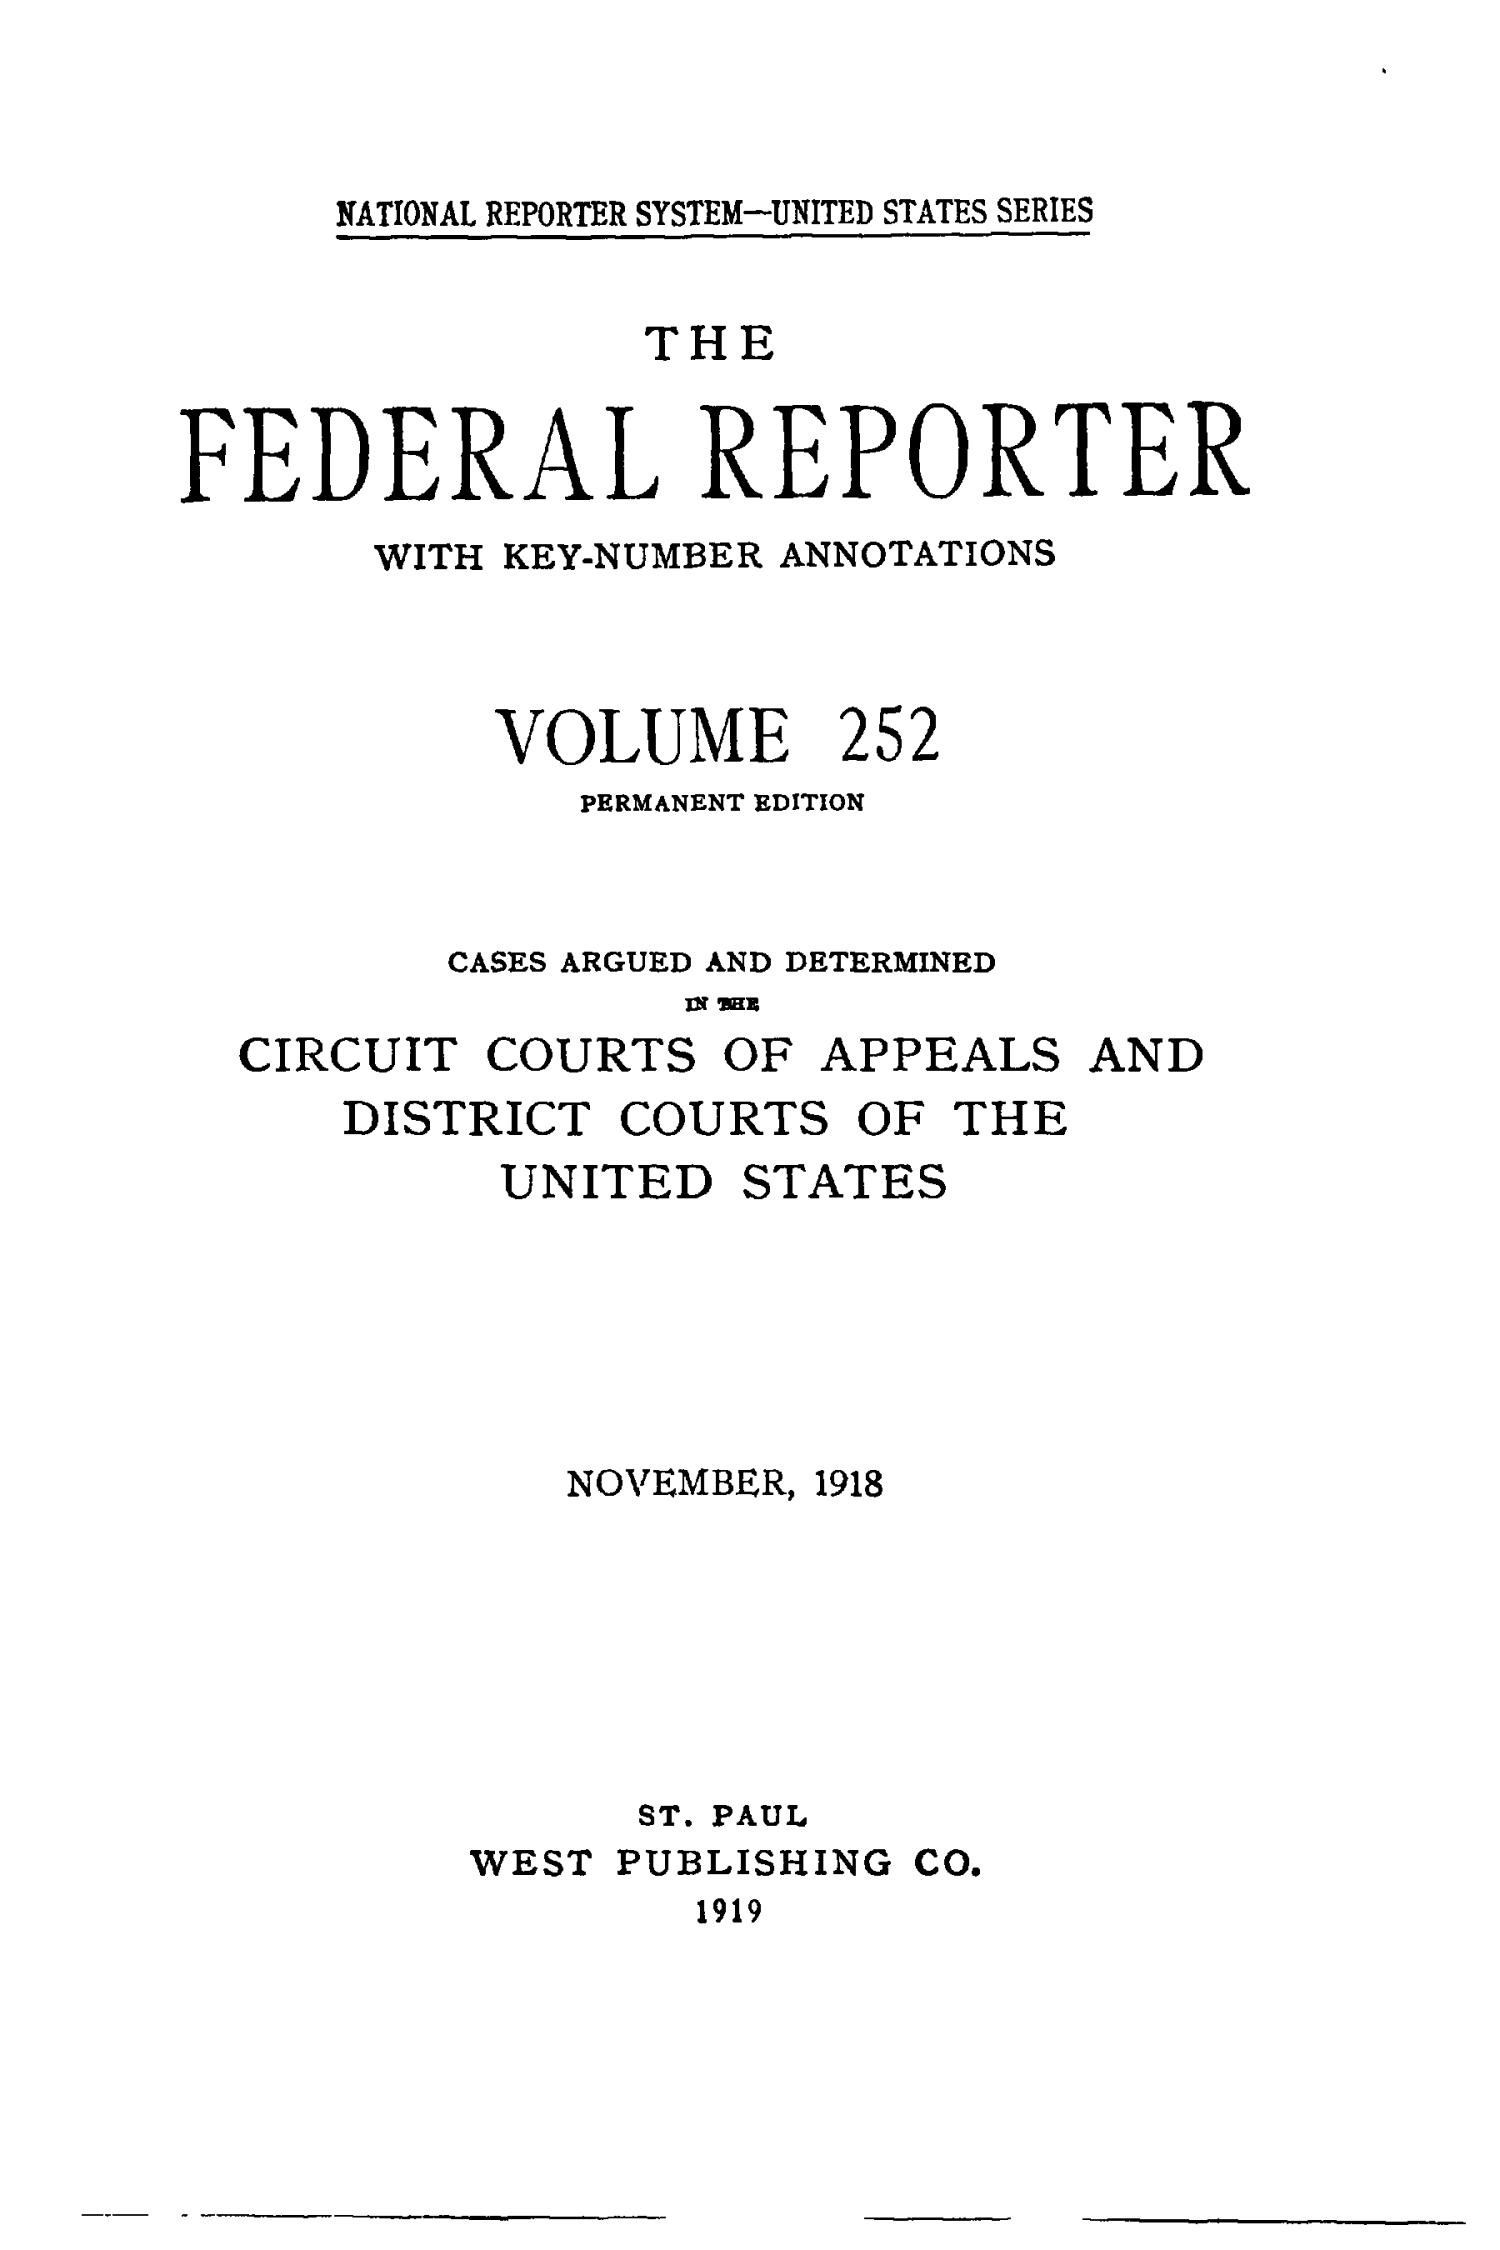 The Federal Reporter with Key-Number Annotations, Volume 252: Cases Argued and Determined in the Circuit Courts of Appeals and District Courts of the United States, November, 1918.                                                                                                      Title Page